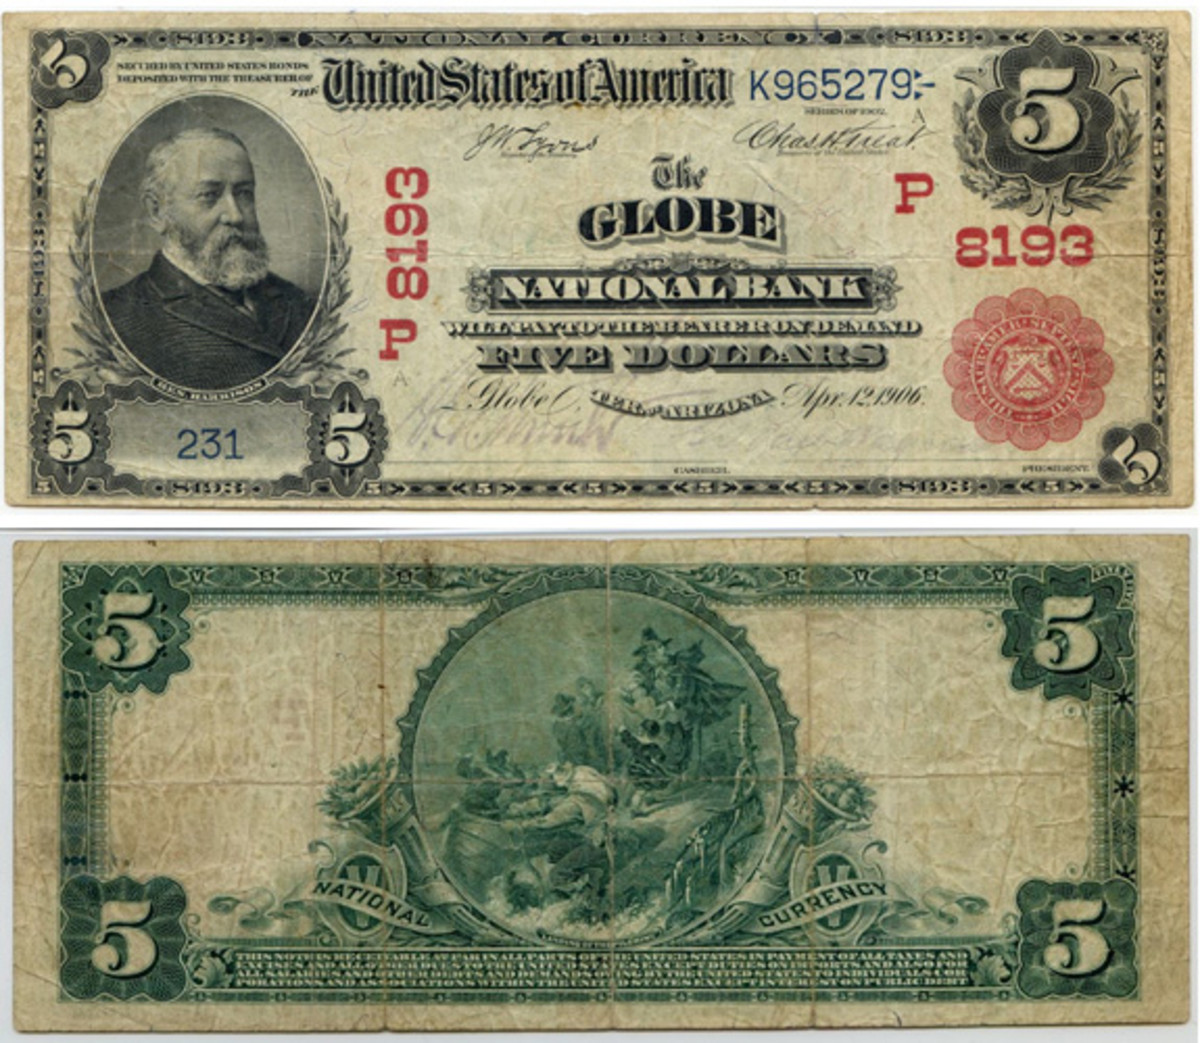 Sensational first-reported $5 Series of 1902 Red Seal from the Territory of Arizona. This Globe note was shipped to the bank from the Comptroller of the Currency's office on March 16, 1907, in the first shipment of $5s consisting of 5-5-5-5 sheets 1 through 830.